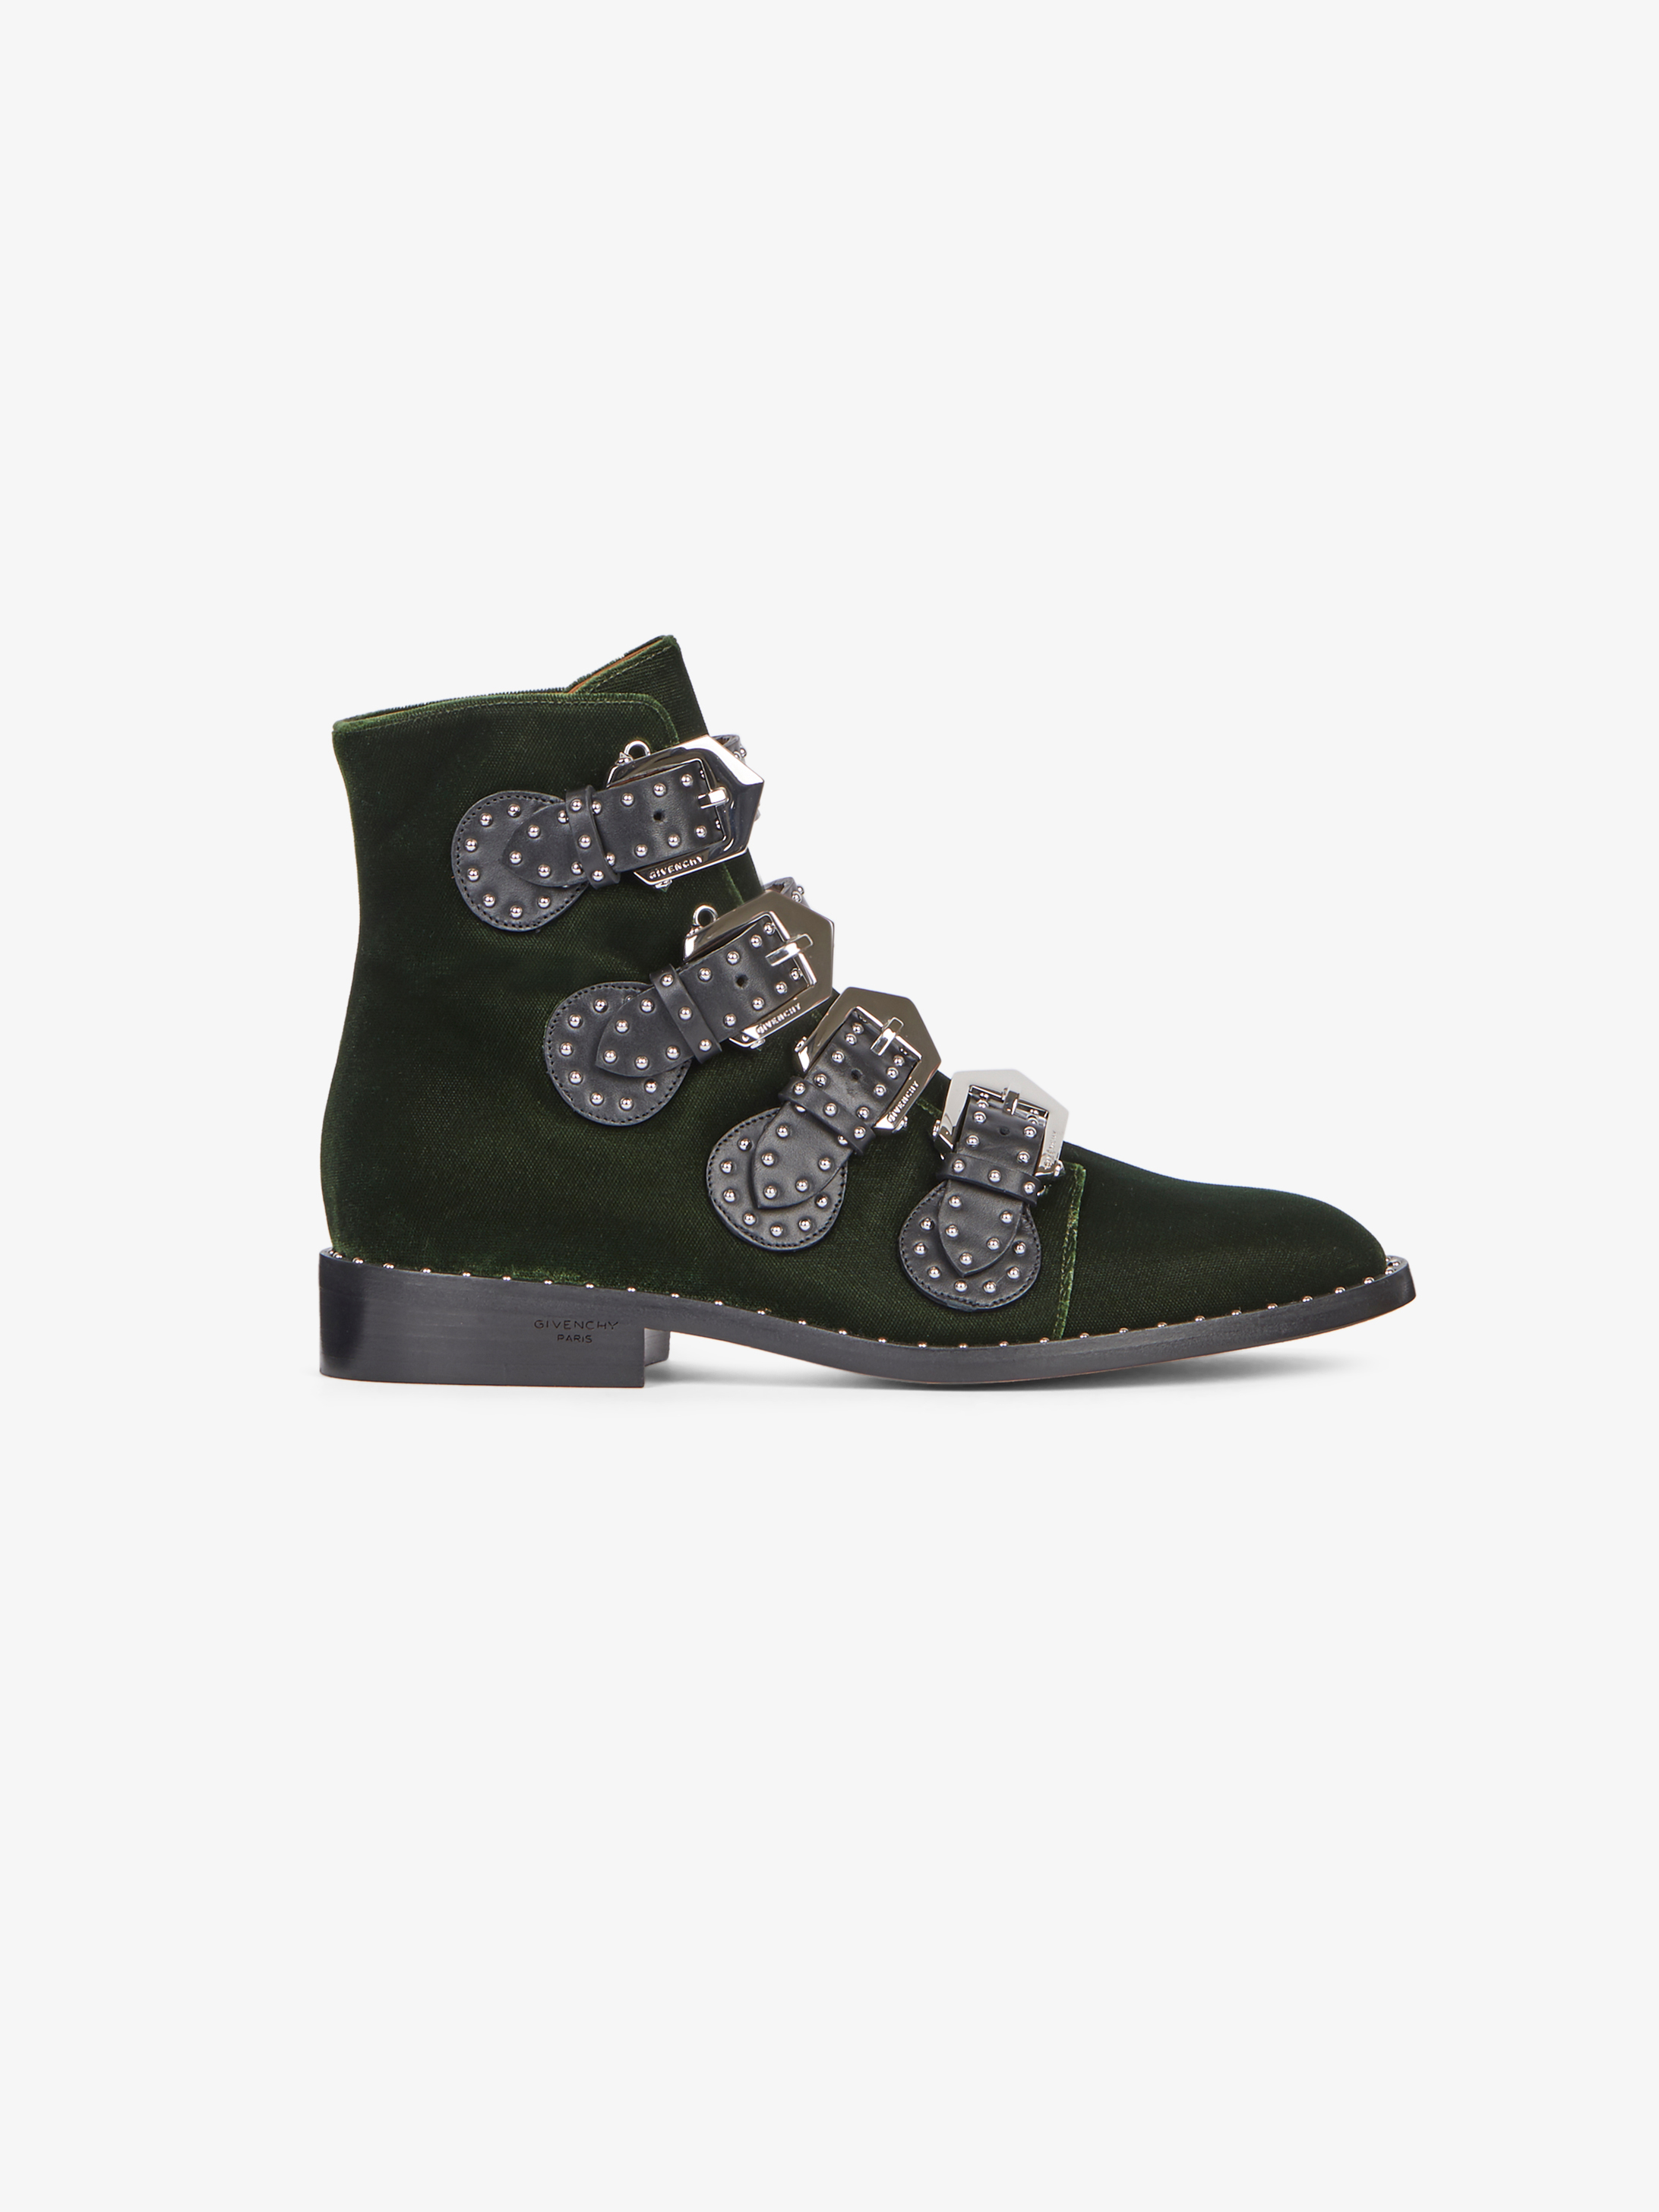 Buckled ankle boots in suede and leather with studs